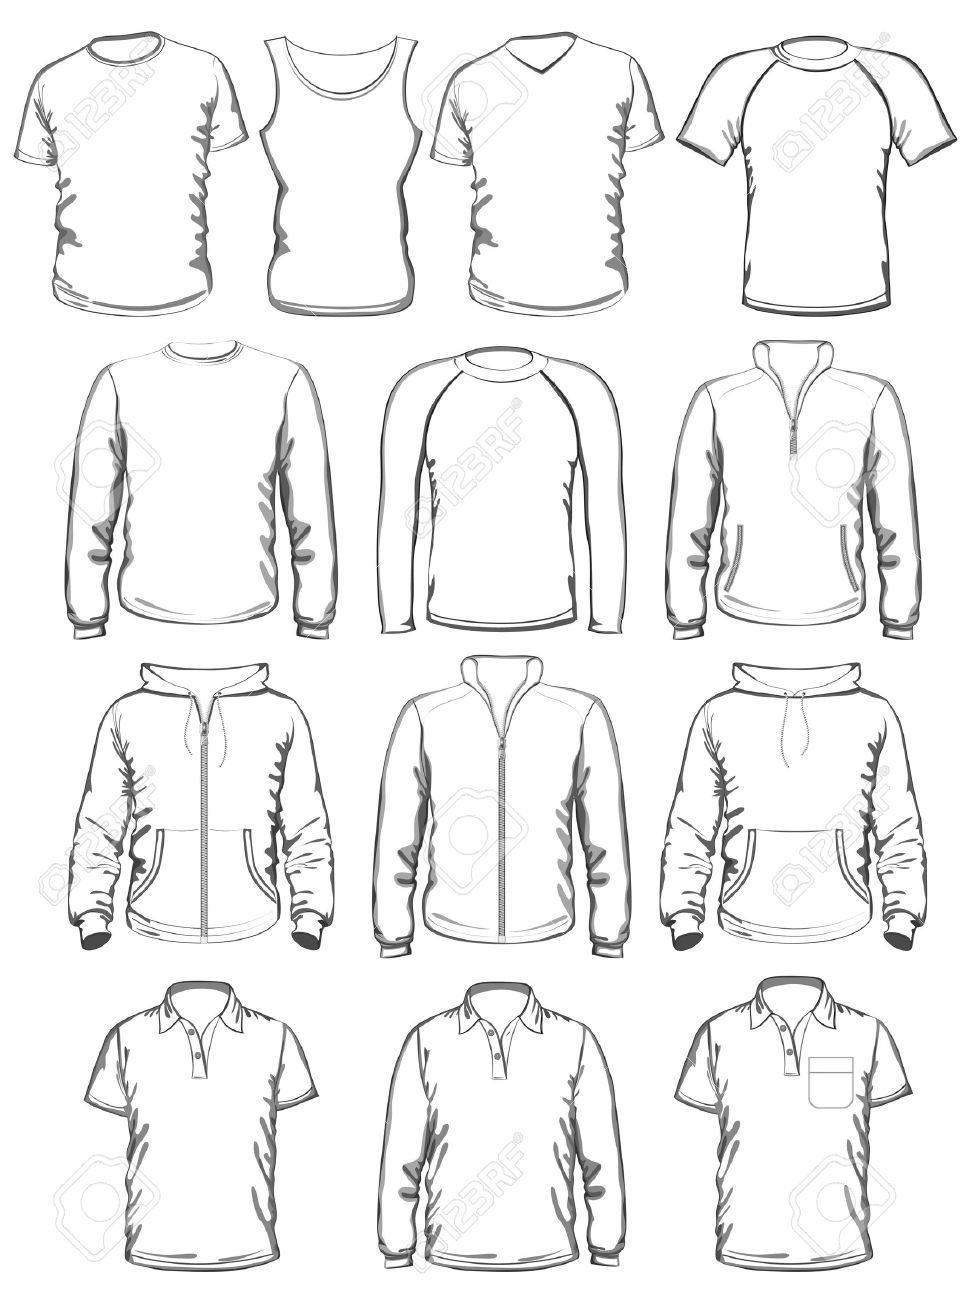 Textiles templates figures image collections templates design ideas textiles templates 28 images garments expenditure report template collection of men clothes outline templates royalty free pronofoot35fo Gallery